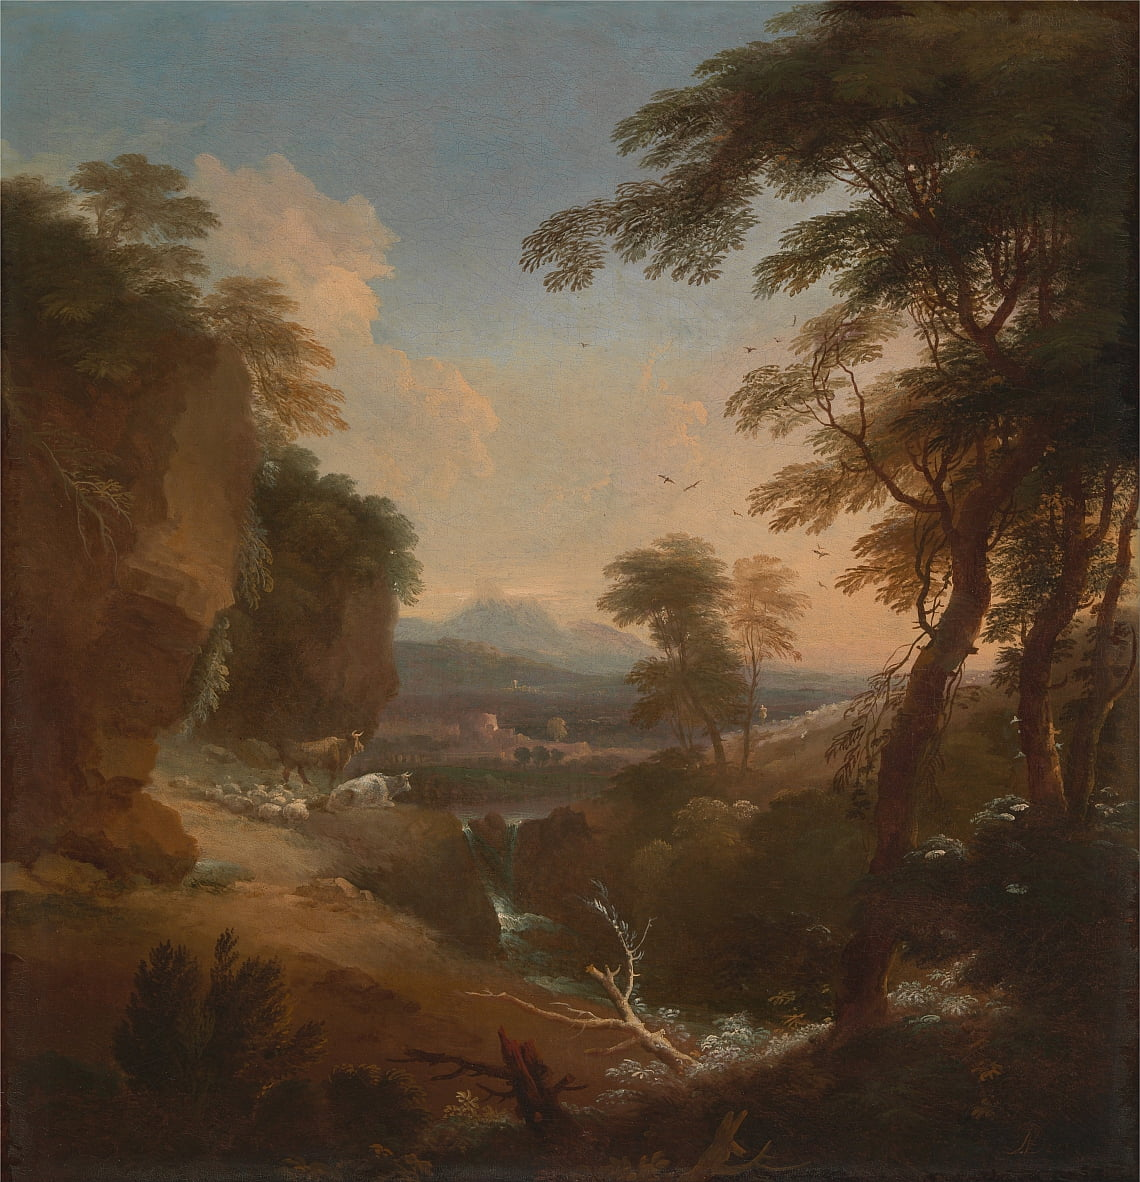 Landscape with Distant Mountains by Adriaen van Diest